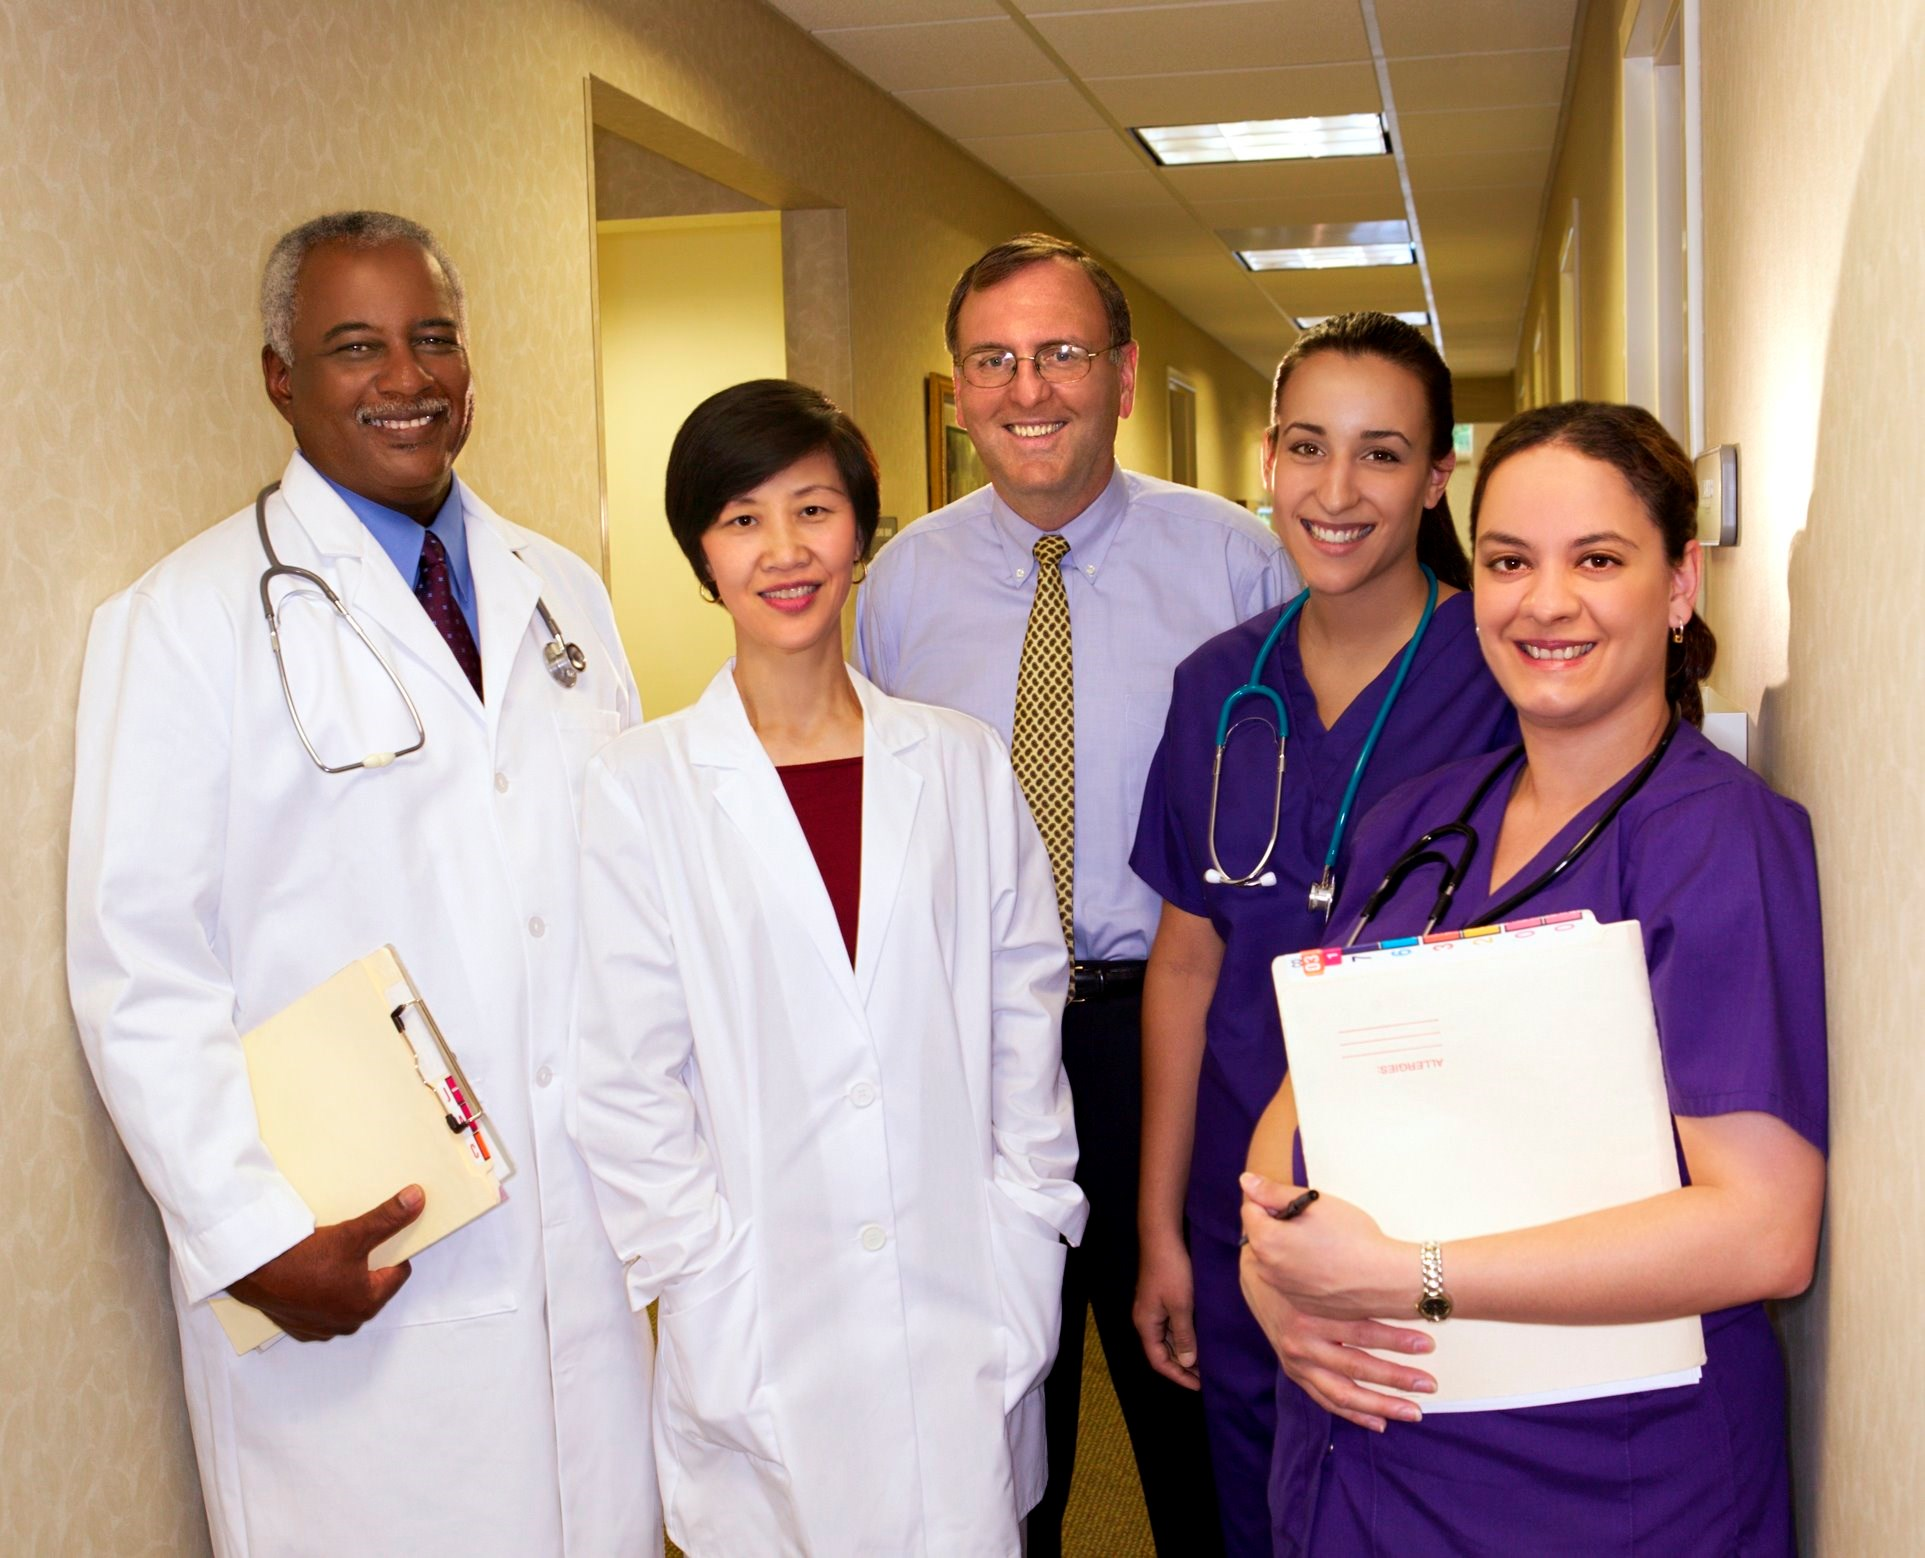 5 Tips to Hire a Great Staff for Your Nephrology or Urology Practice